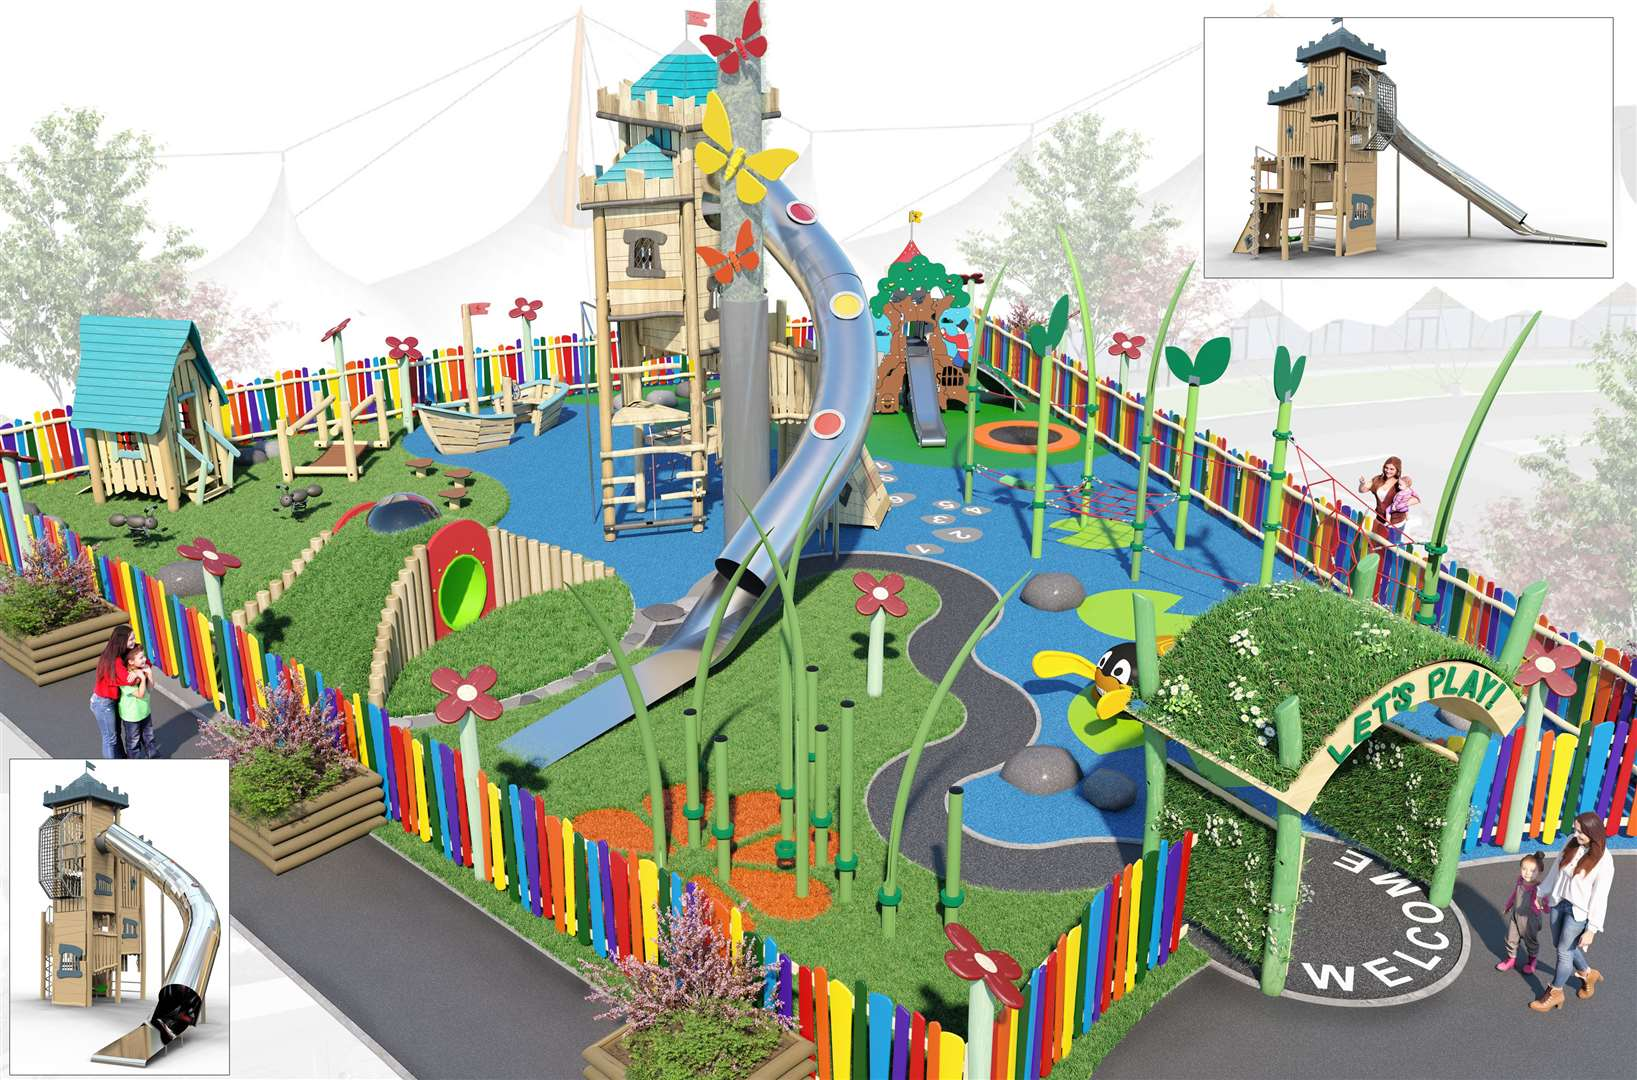 The new play area will open next month